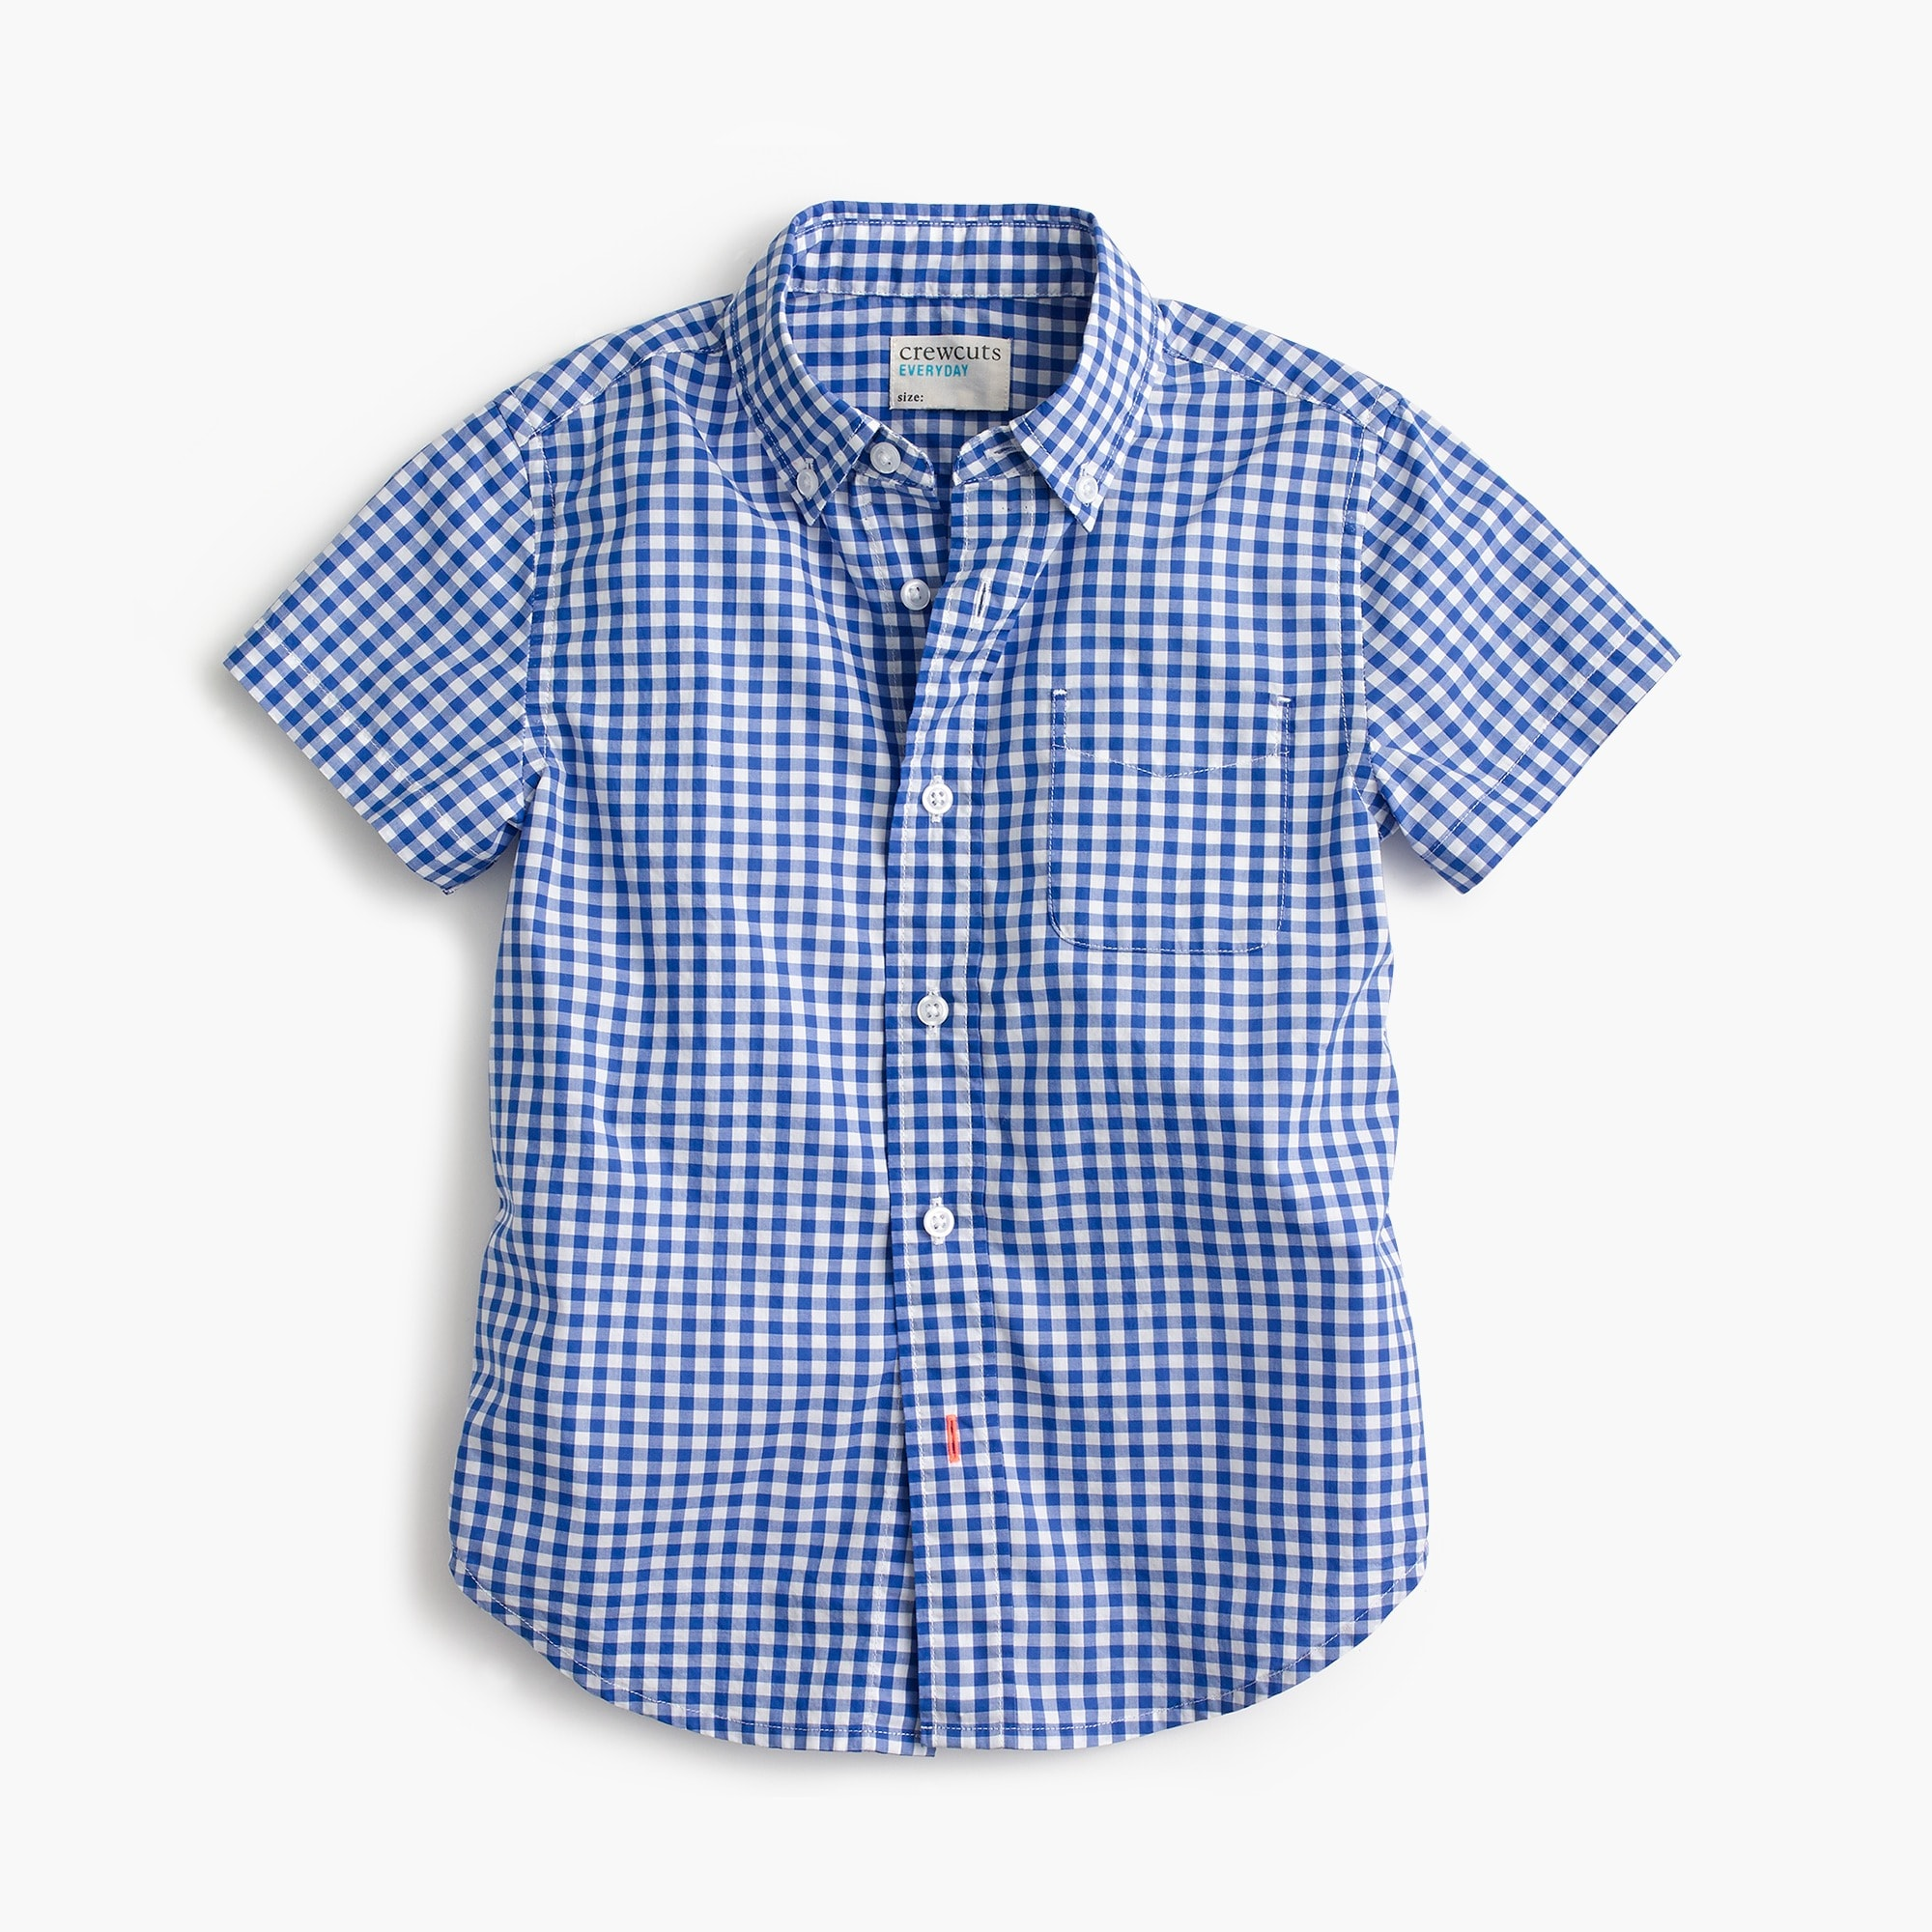 Kids' short-sleeve Secret Wash shirt in blue gingham